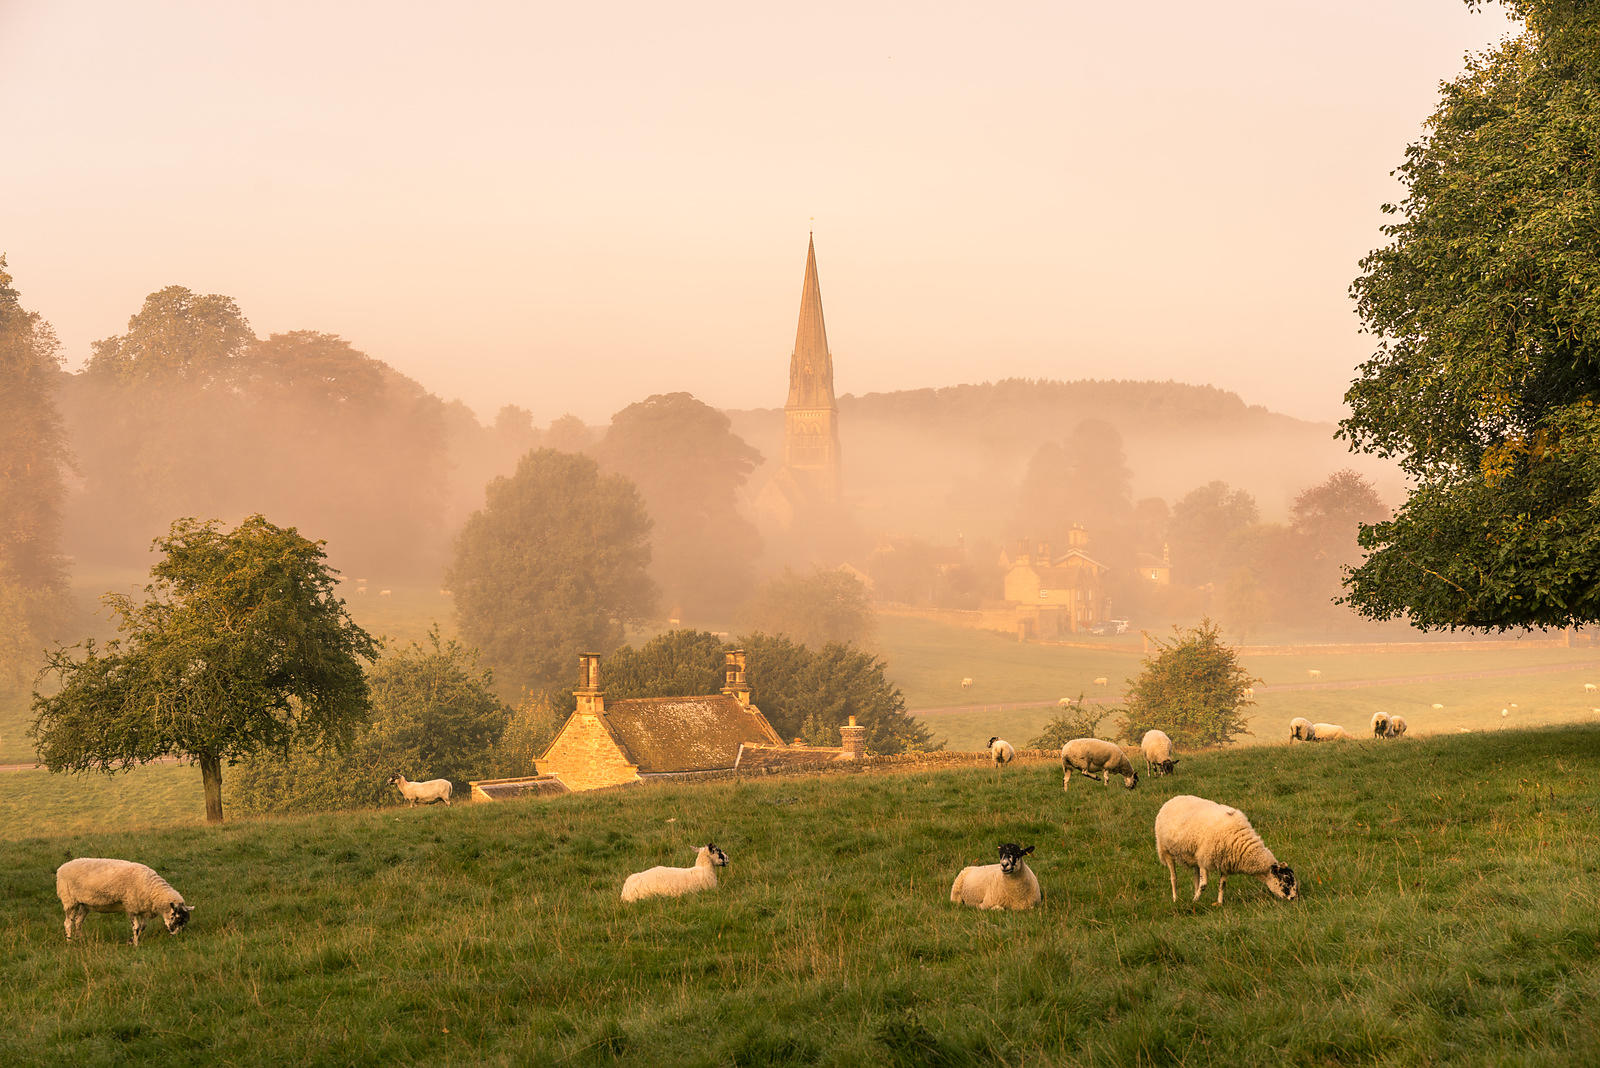 Autumn morning at Edensor